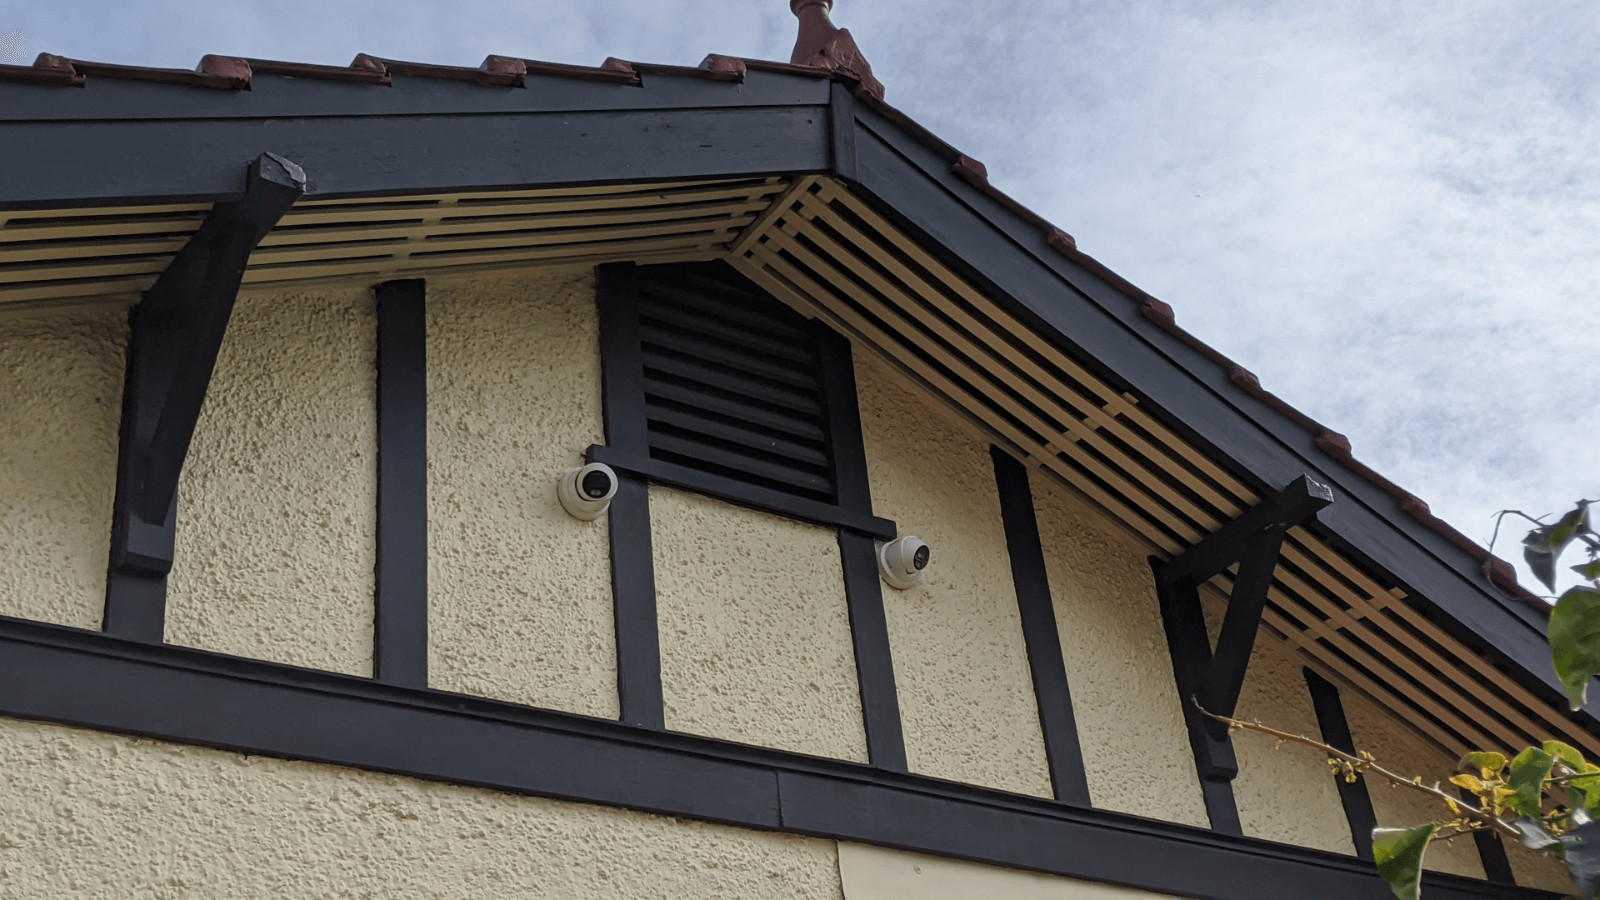 Security system cctv install Mount Lawle